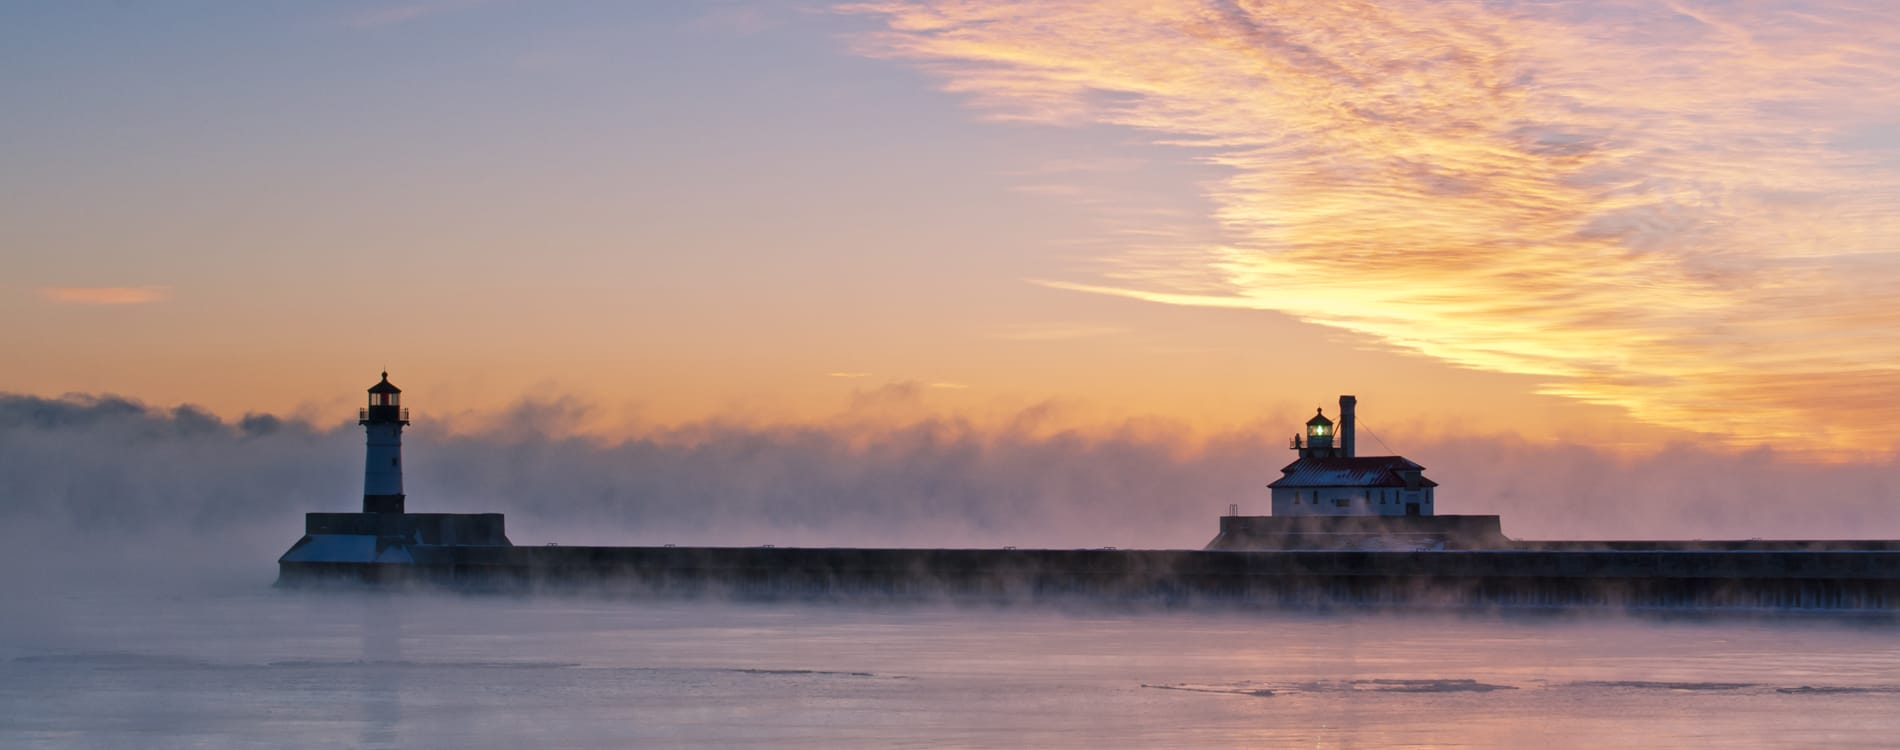 Duluth, MN - Foggy Sunrise on Lake Superior